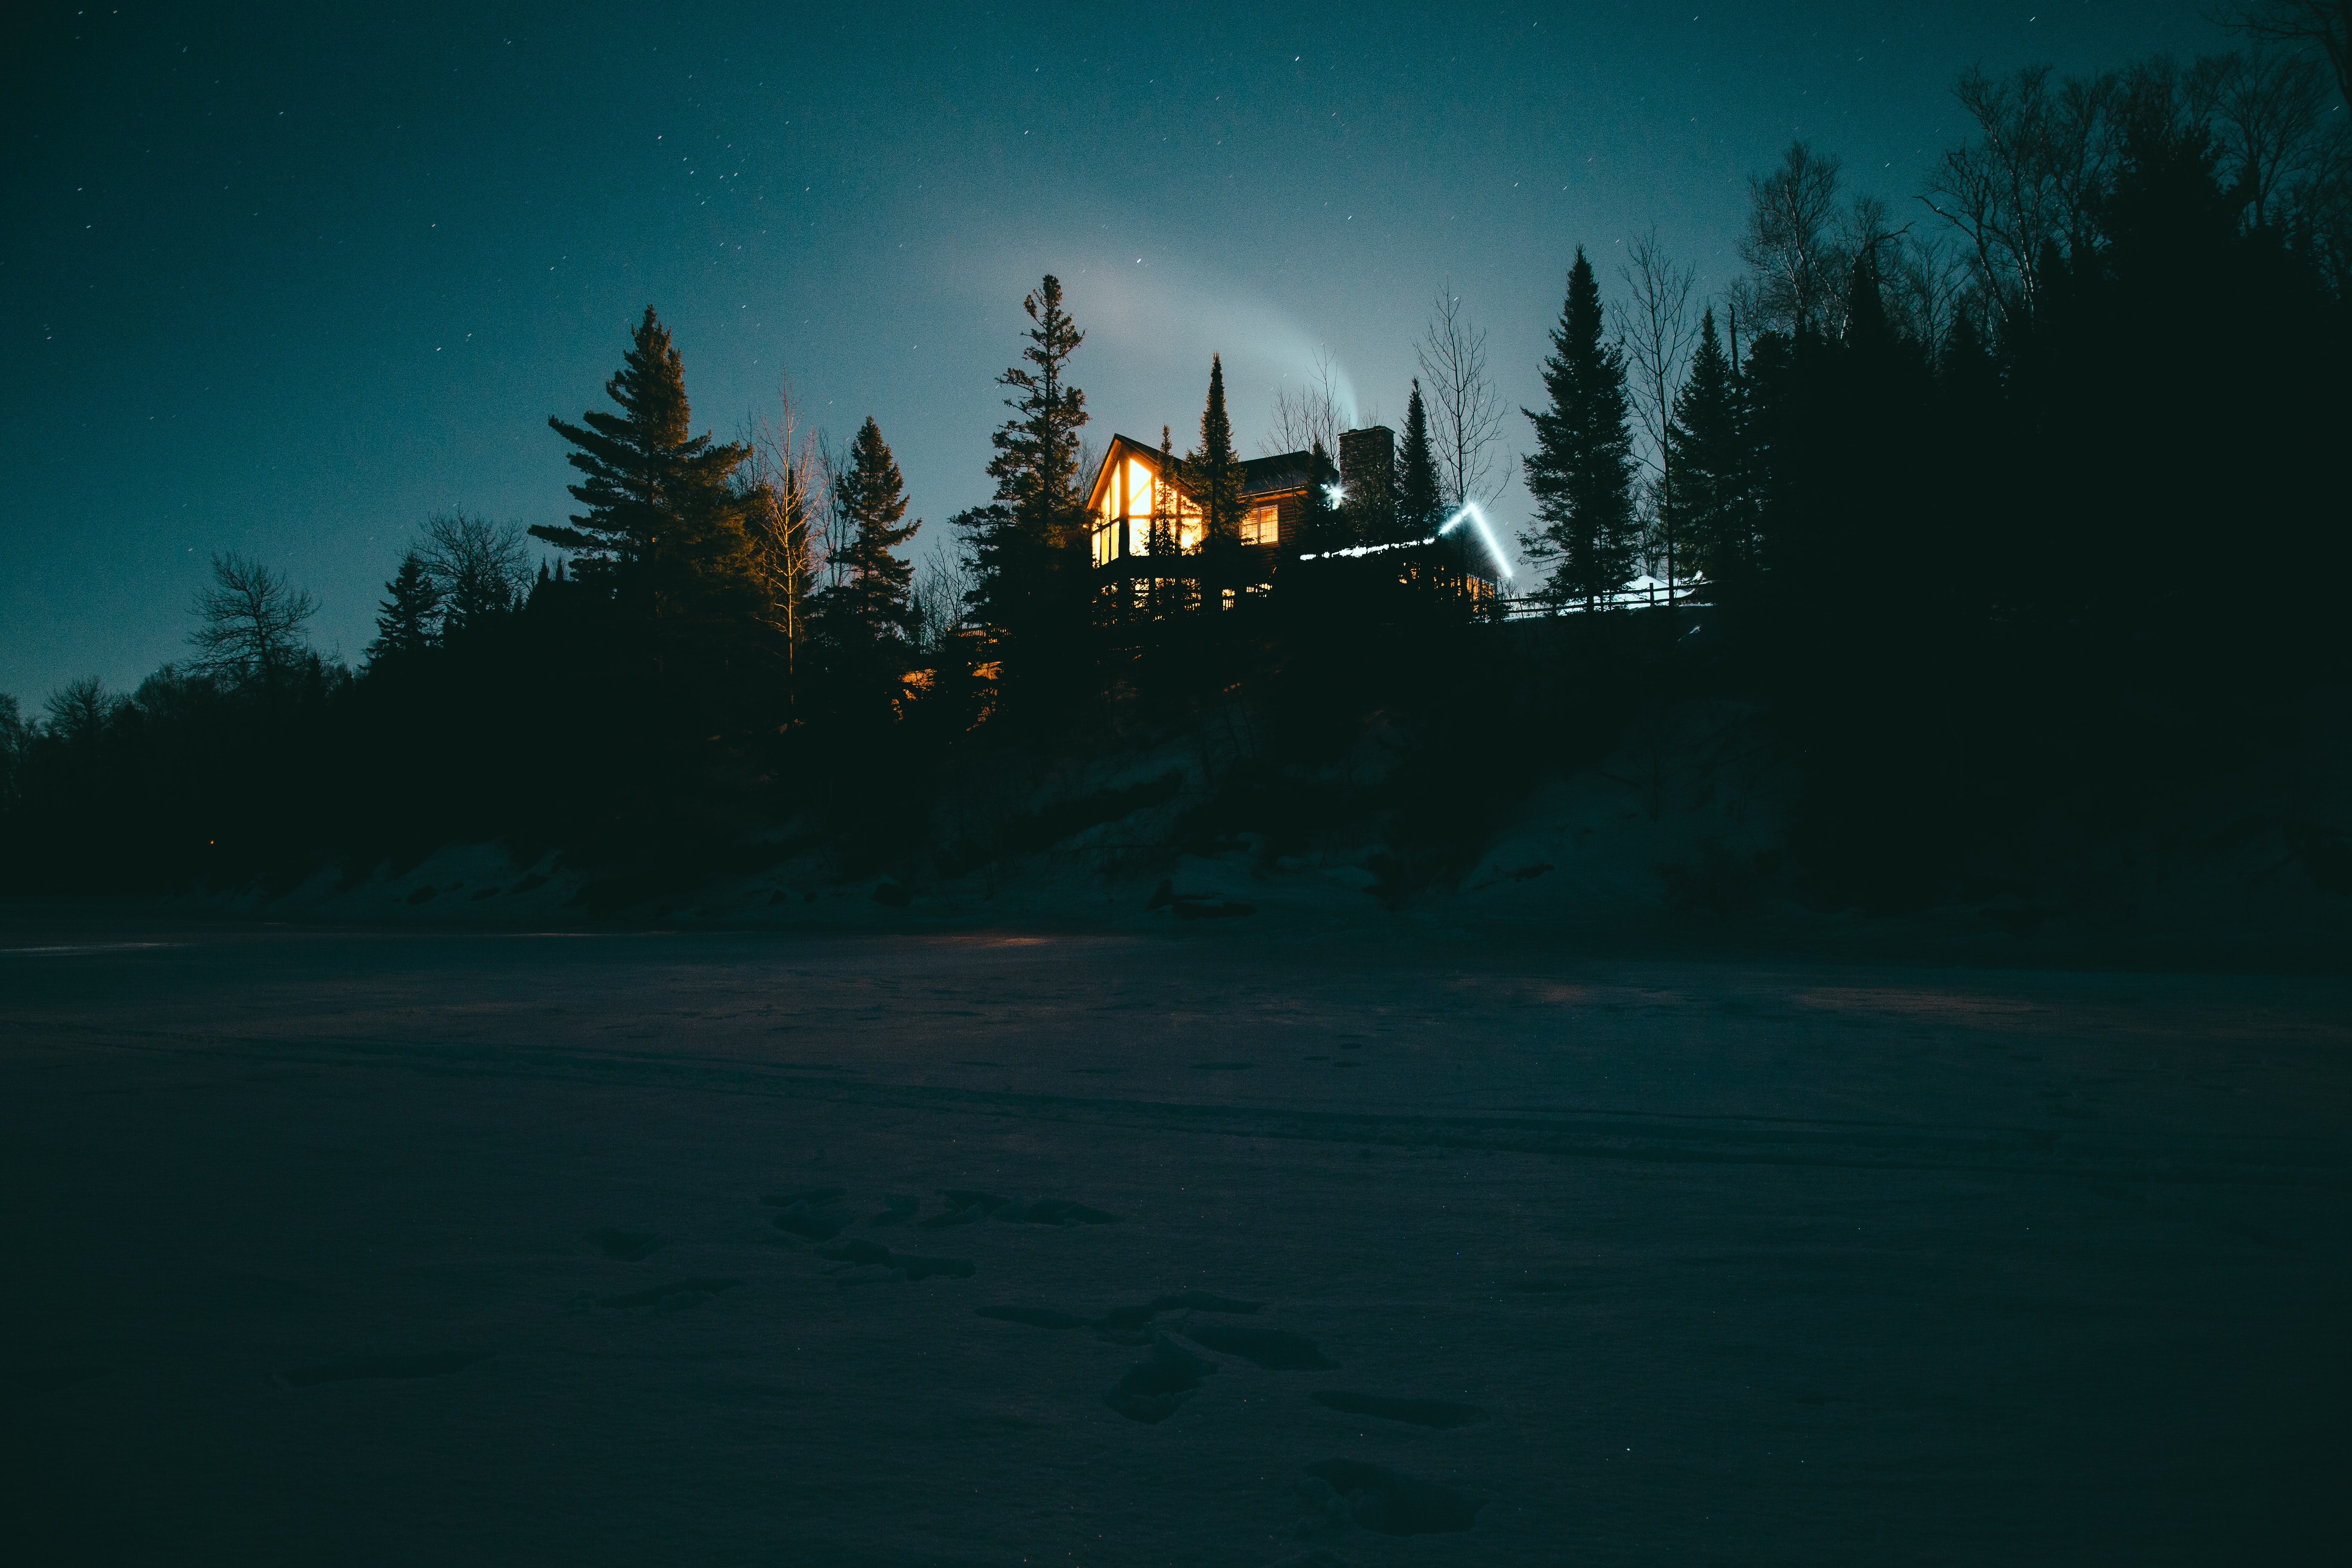 house surrounded by trees during night